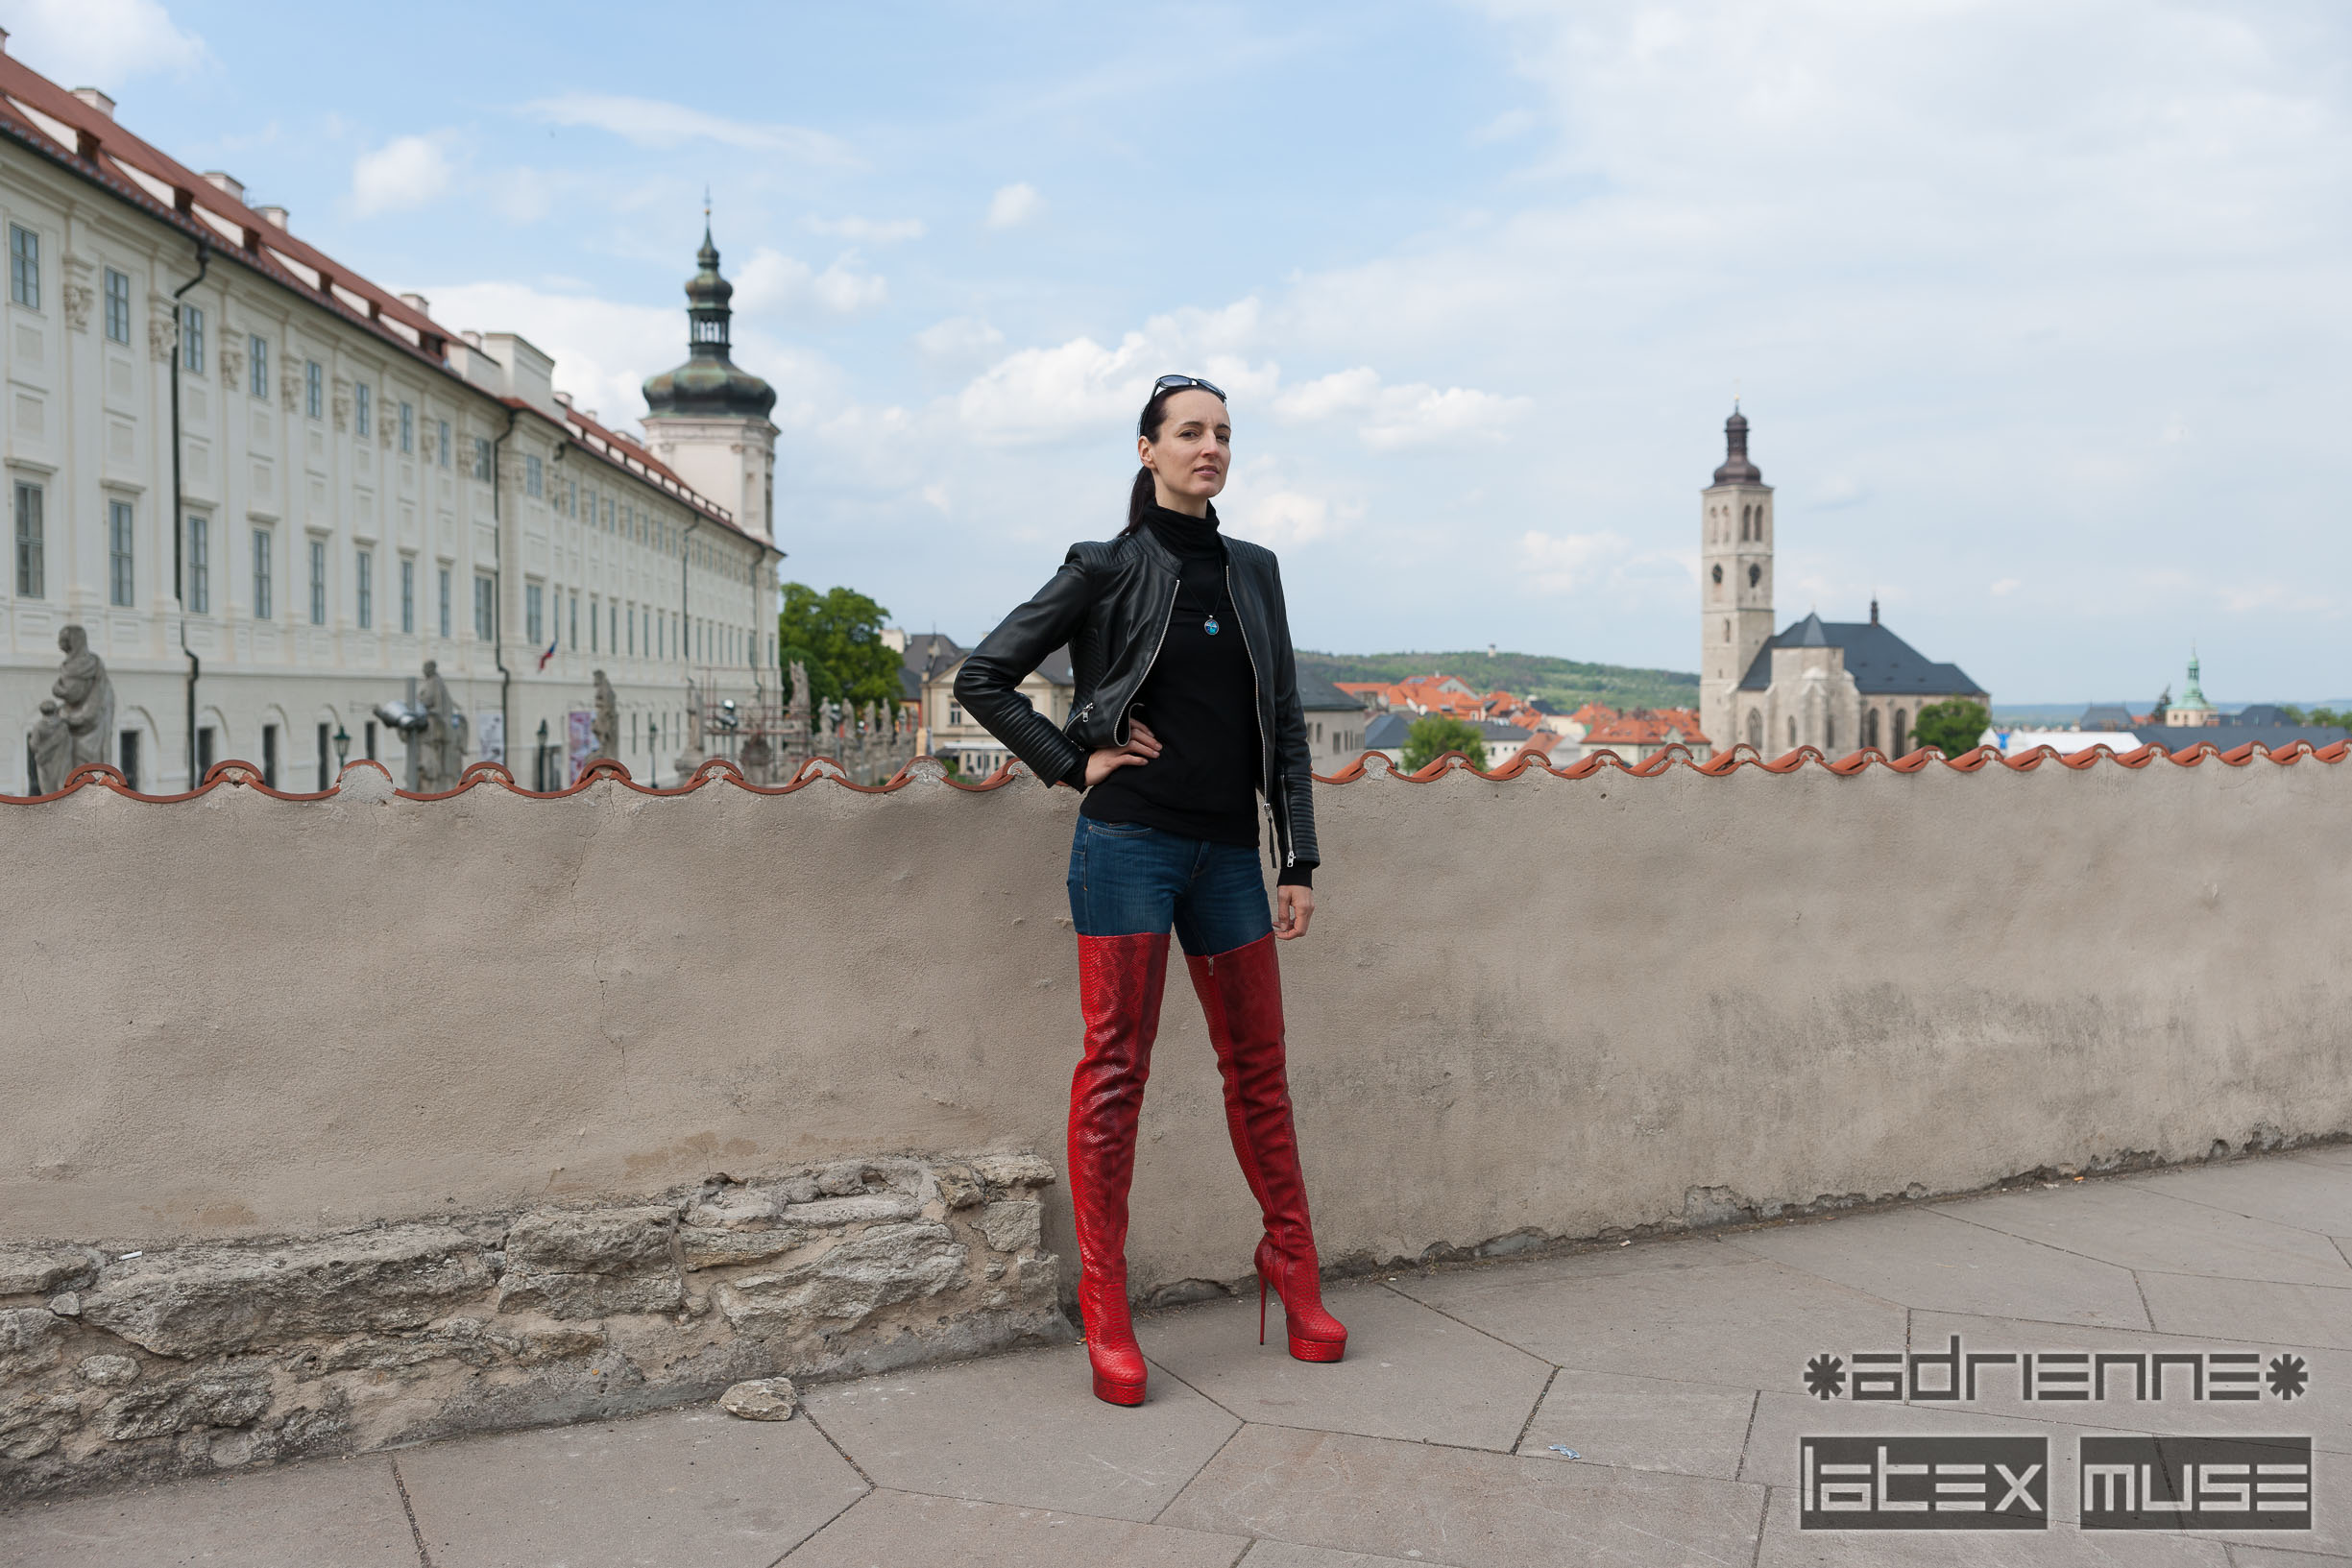 2019 - Sightseeing of Kutna Hora